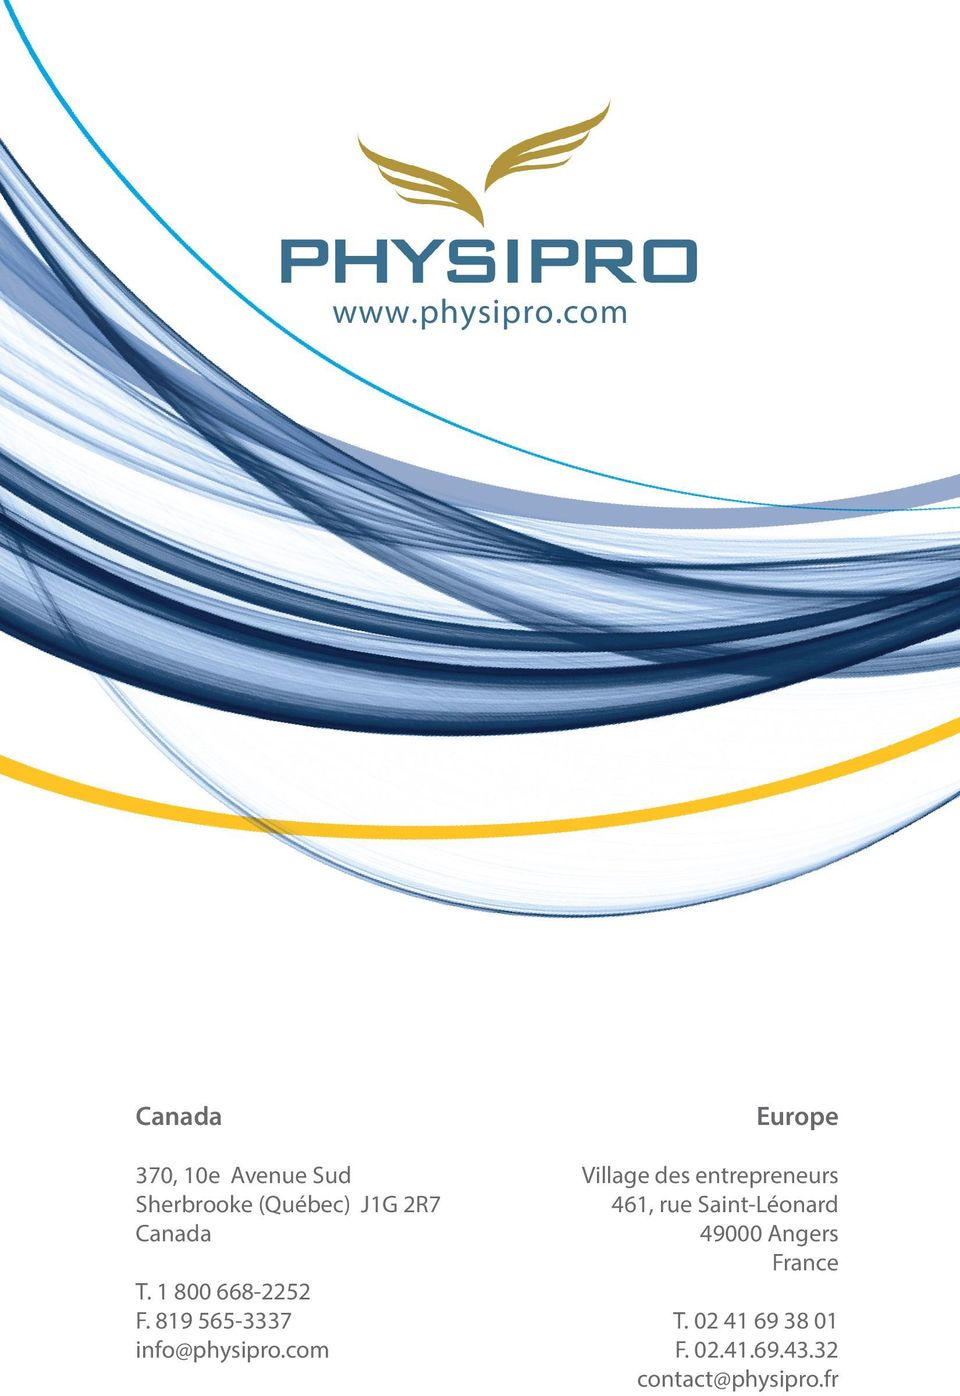 T. 1 800 668-2252 F. 819 565-3337 info@physipro.